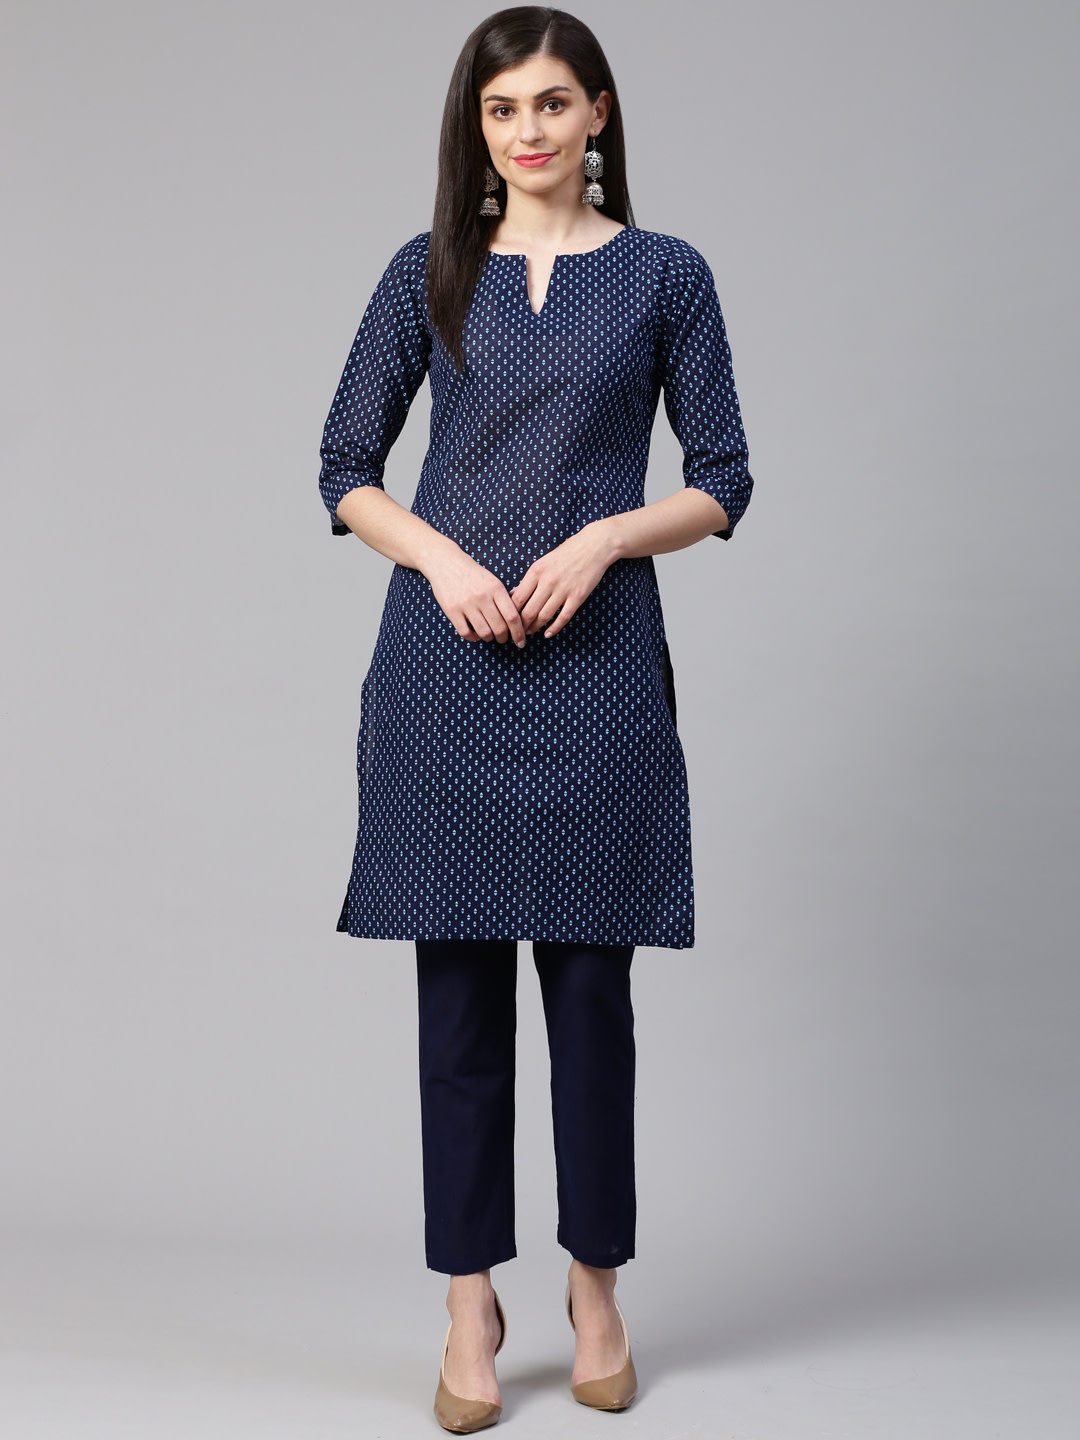 Jompers |  Jompers® Women Blue Pure Cotton Printed Kurta with pants set